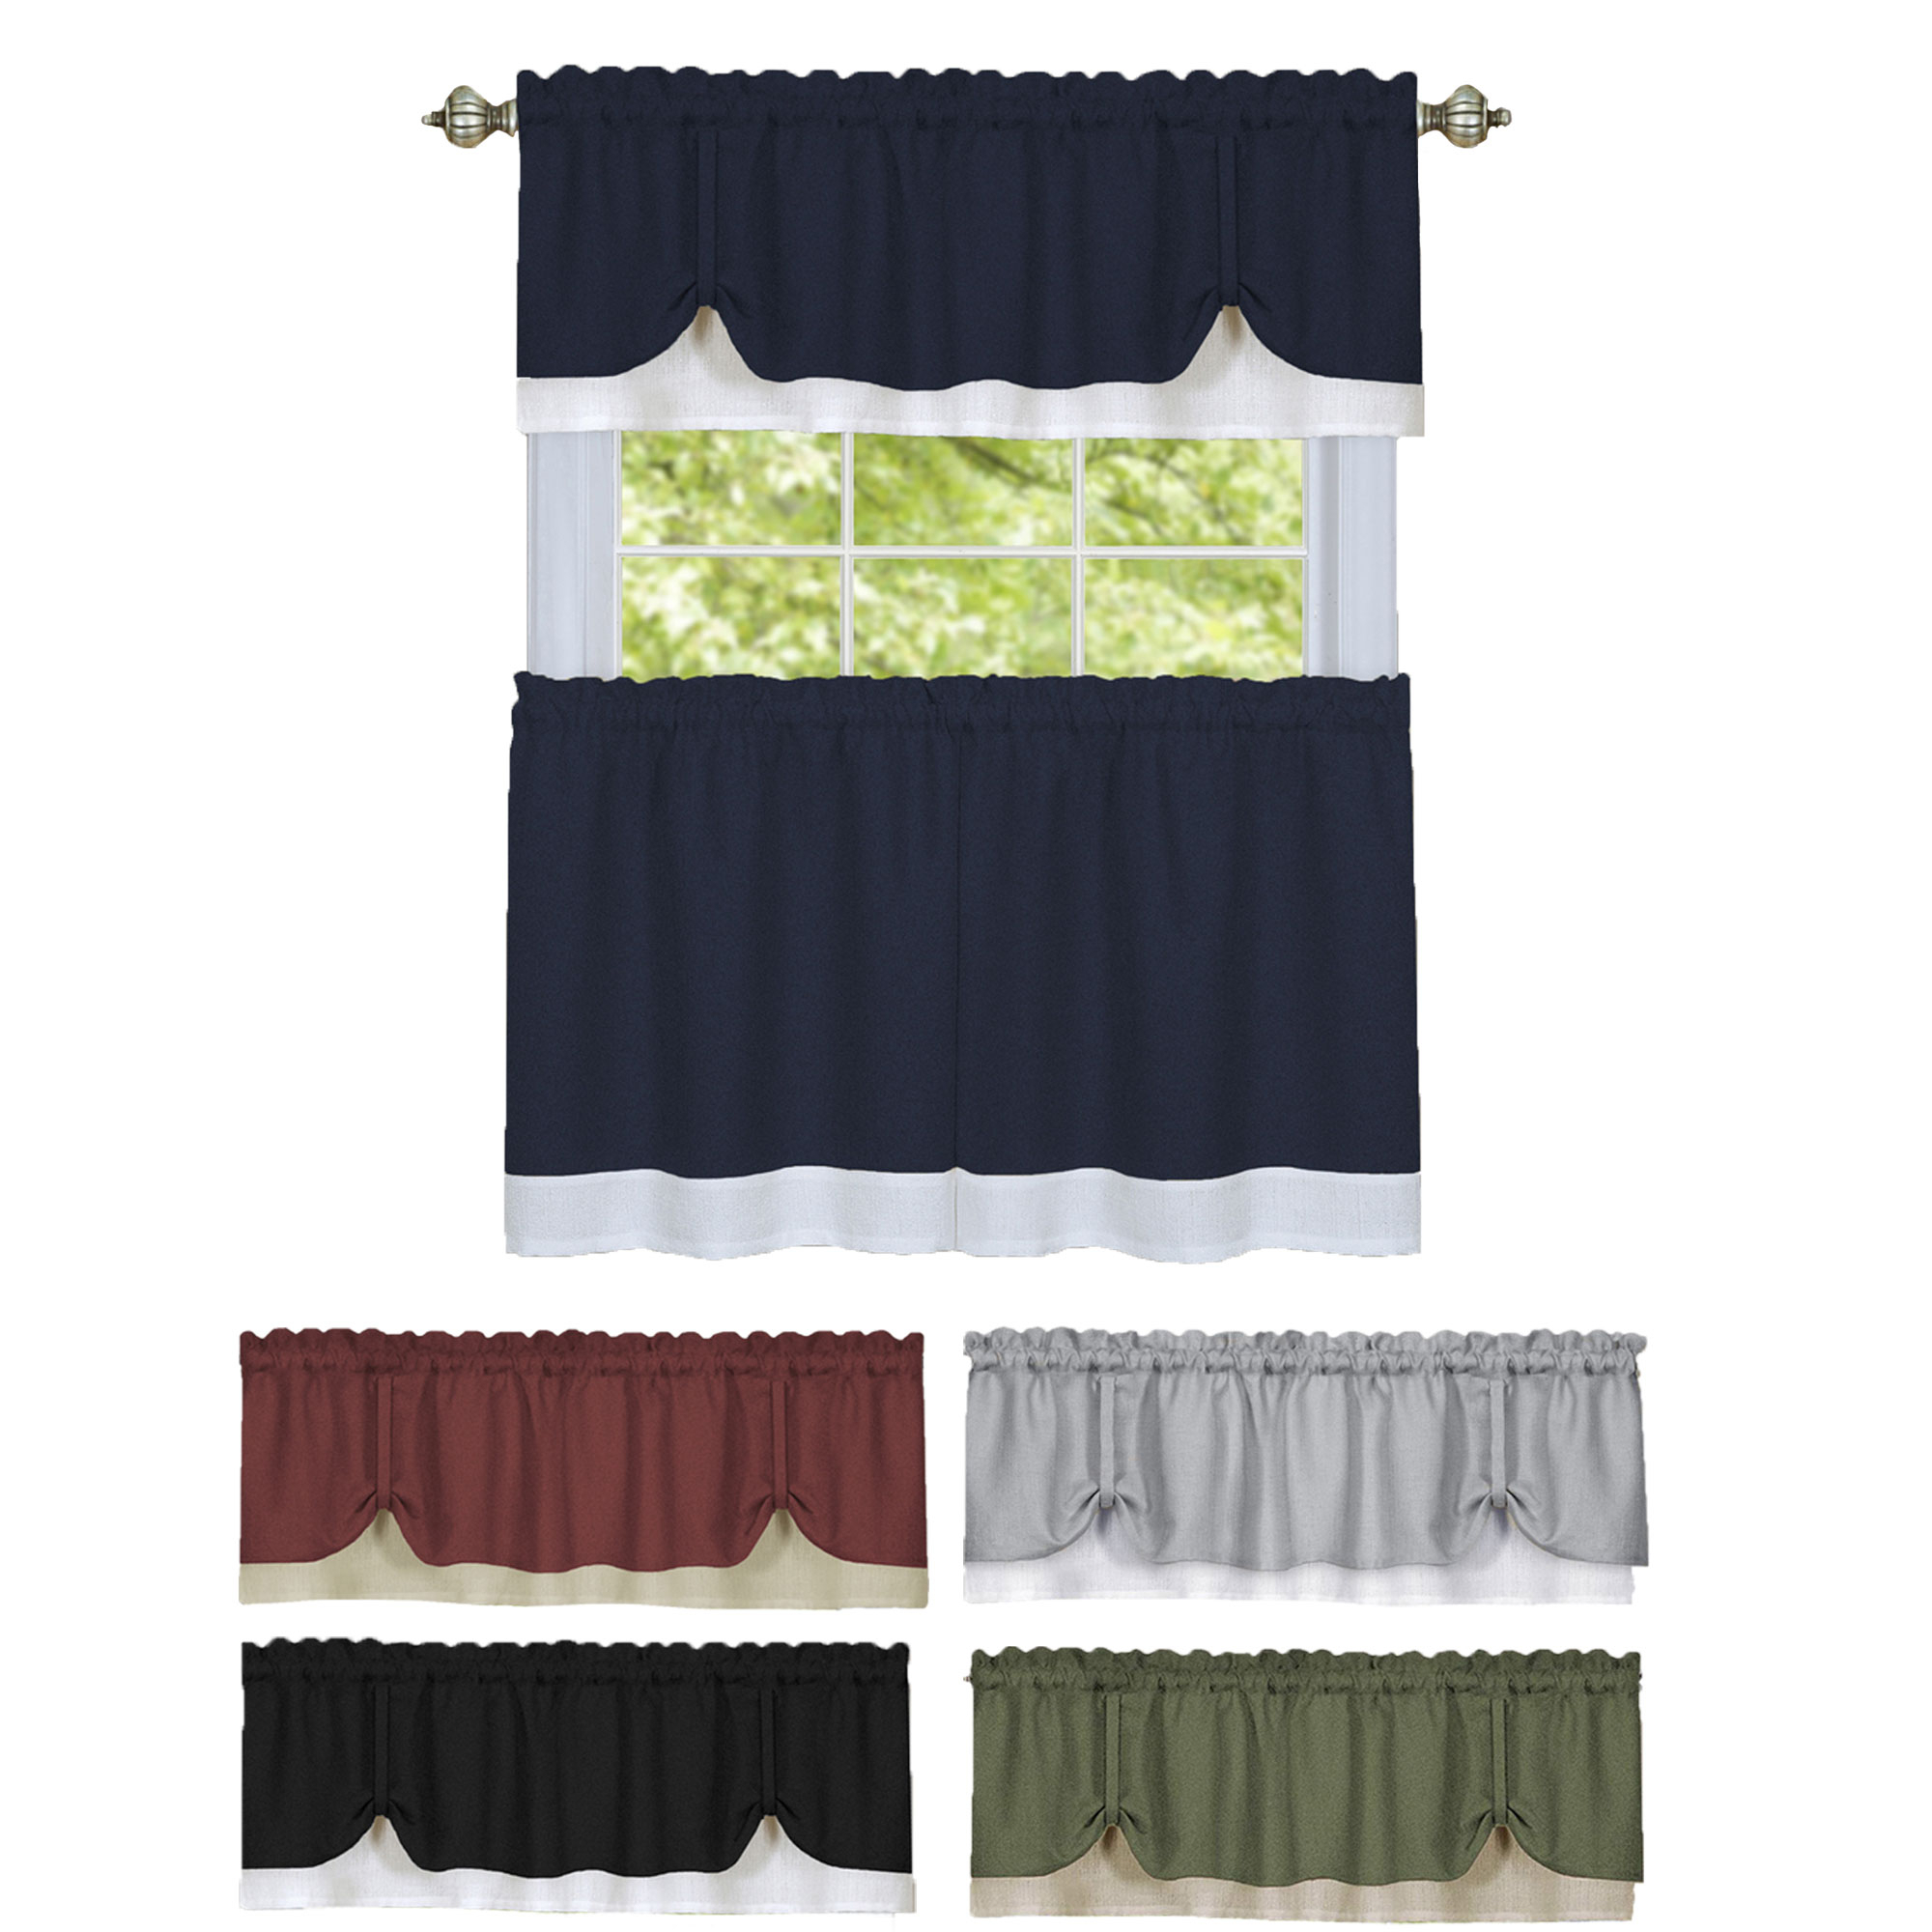 Details About Solid Window Curtain Double Layer Tier Pair & Valance Set With Cotton Blend Grey Kitchen Curtain Tiers (View 7 of 20)